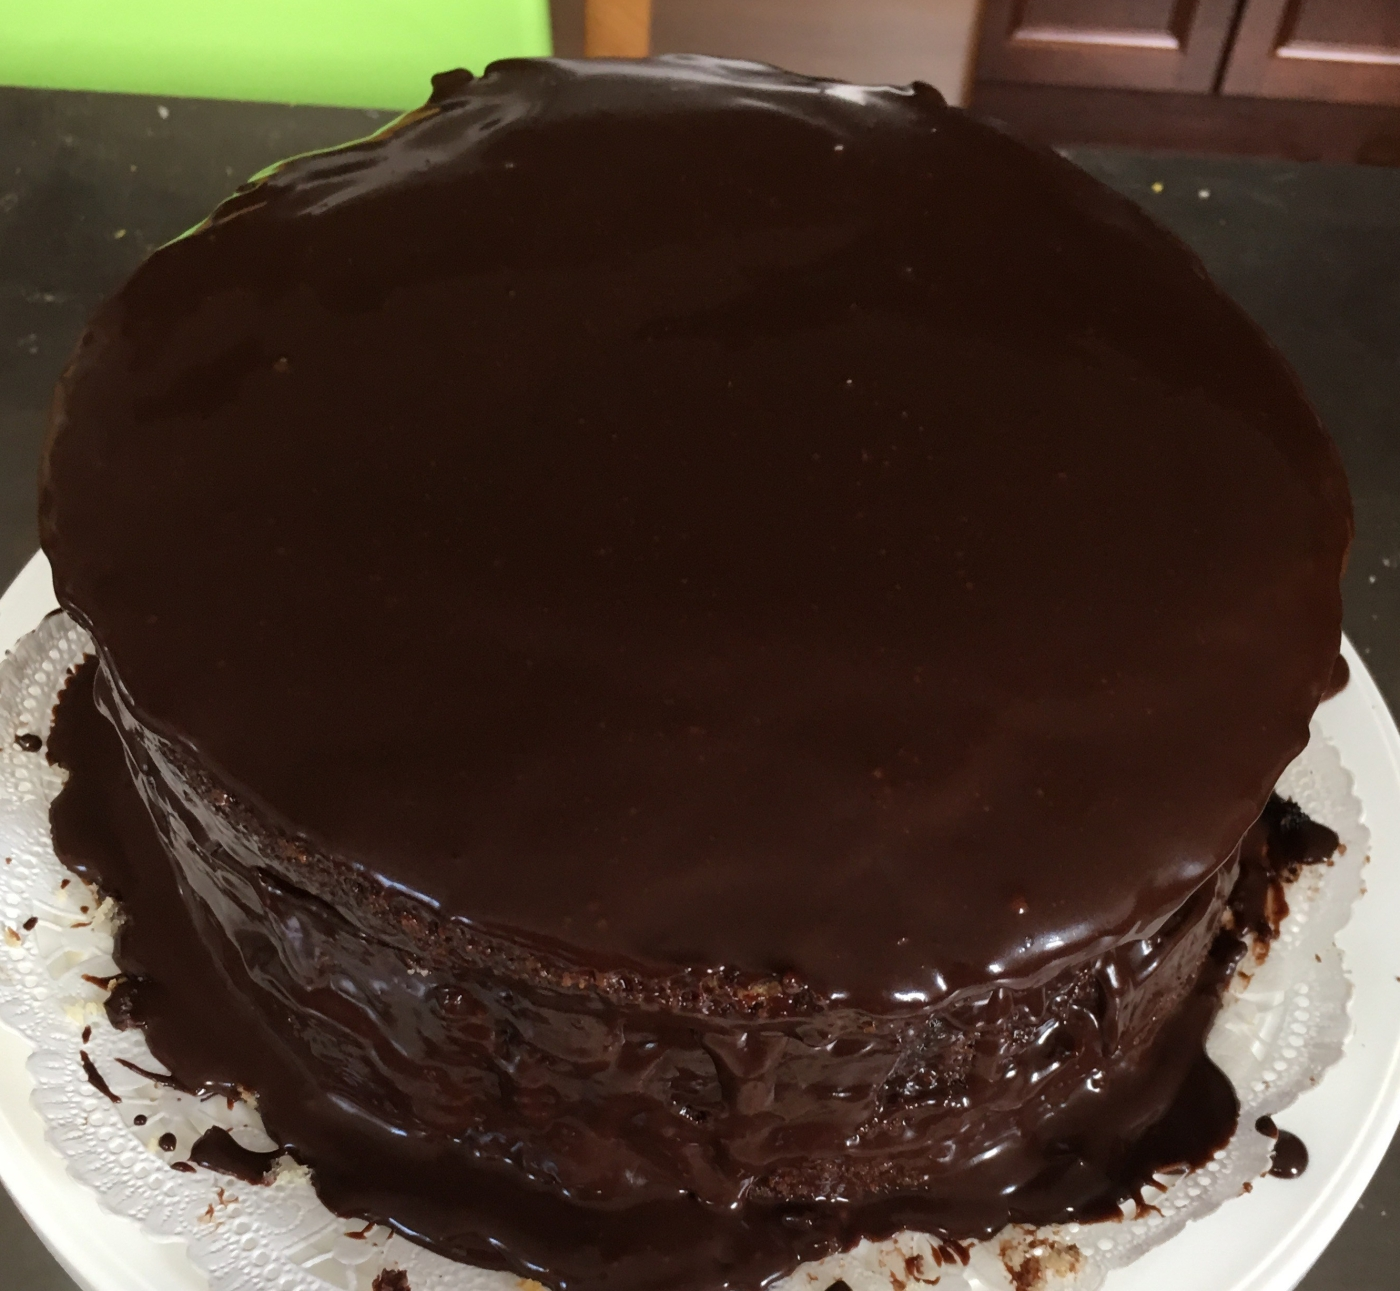 Chocolate ganache covered chocolate & vanilla layer cake.